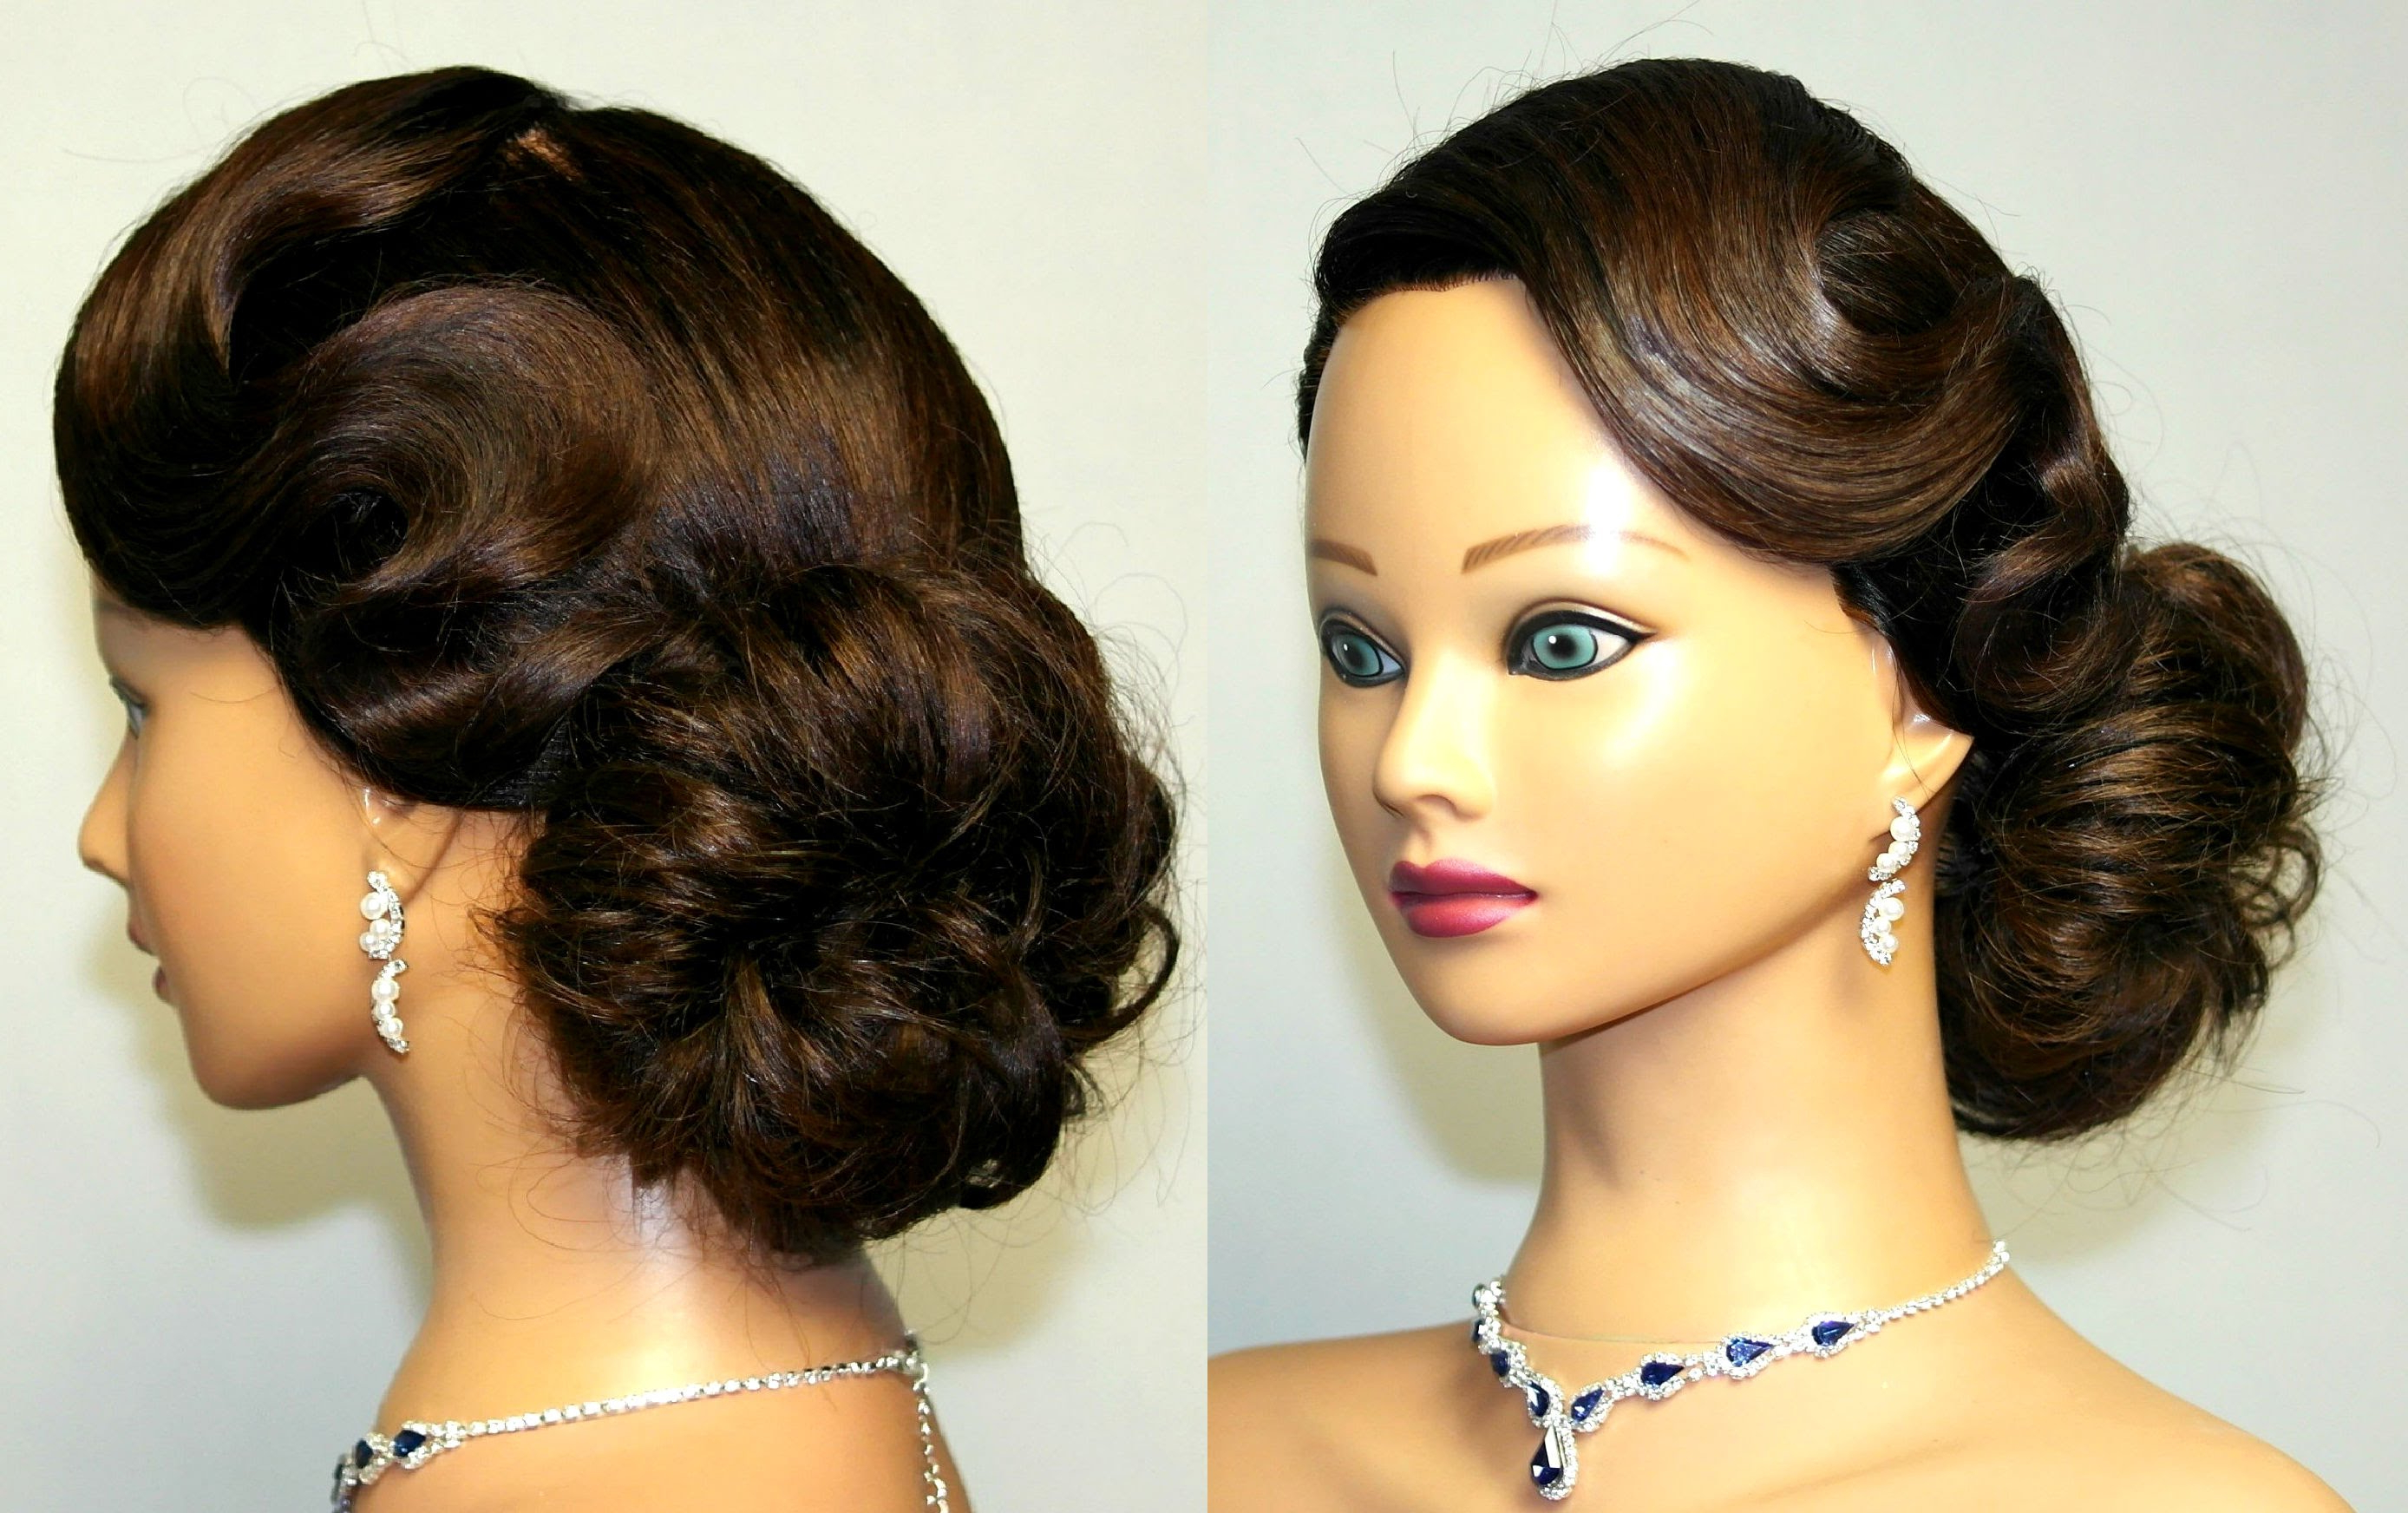 Medium Hairstyle : Medium Longs Length For Thin Hair Fine With Pertaining To Fashionable 20S Medium Hairstyles (View 15 of 20)